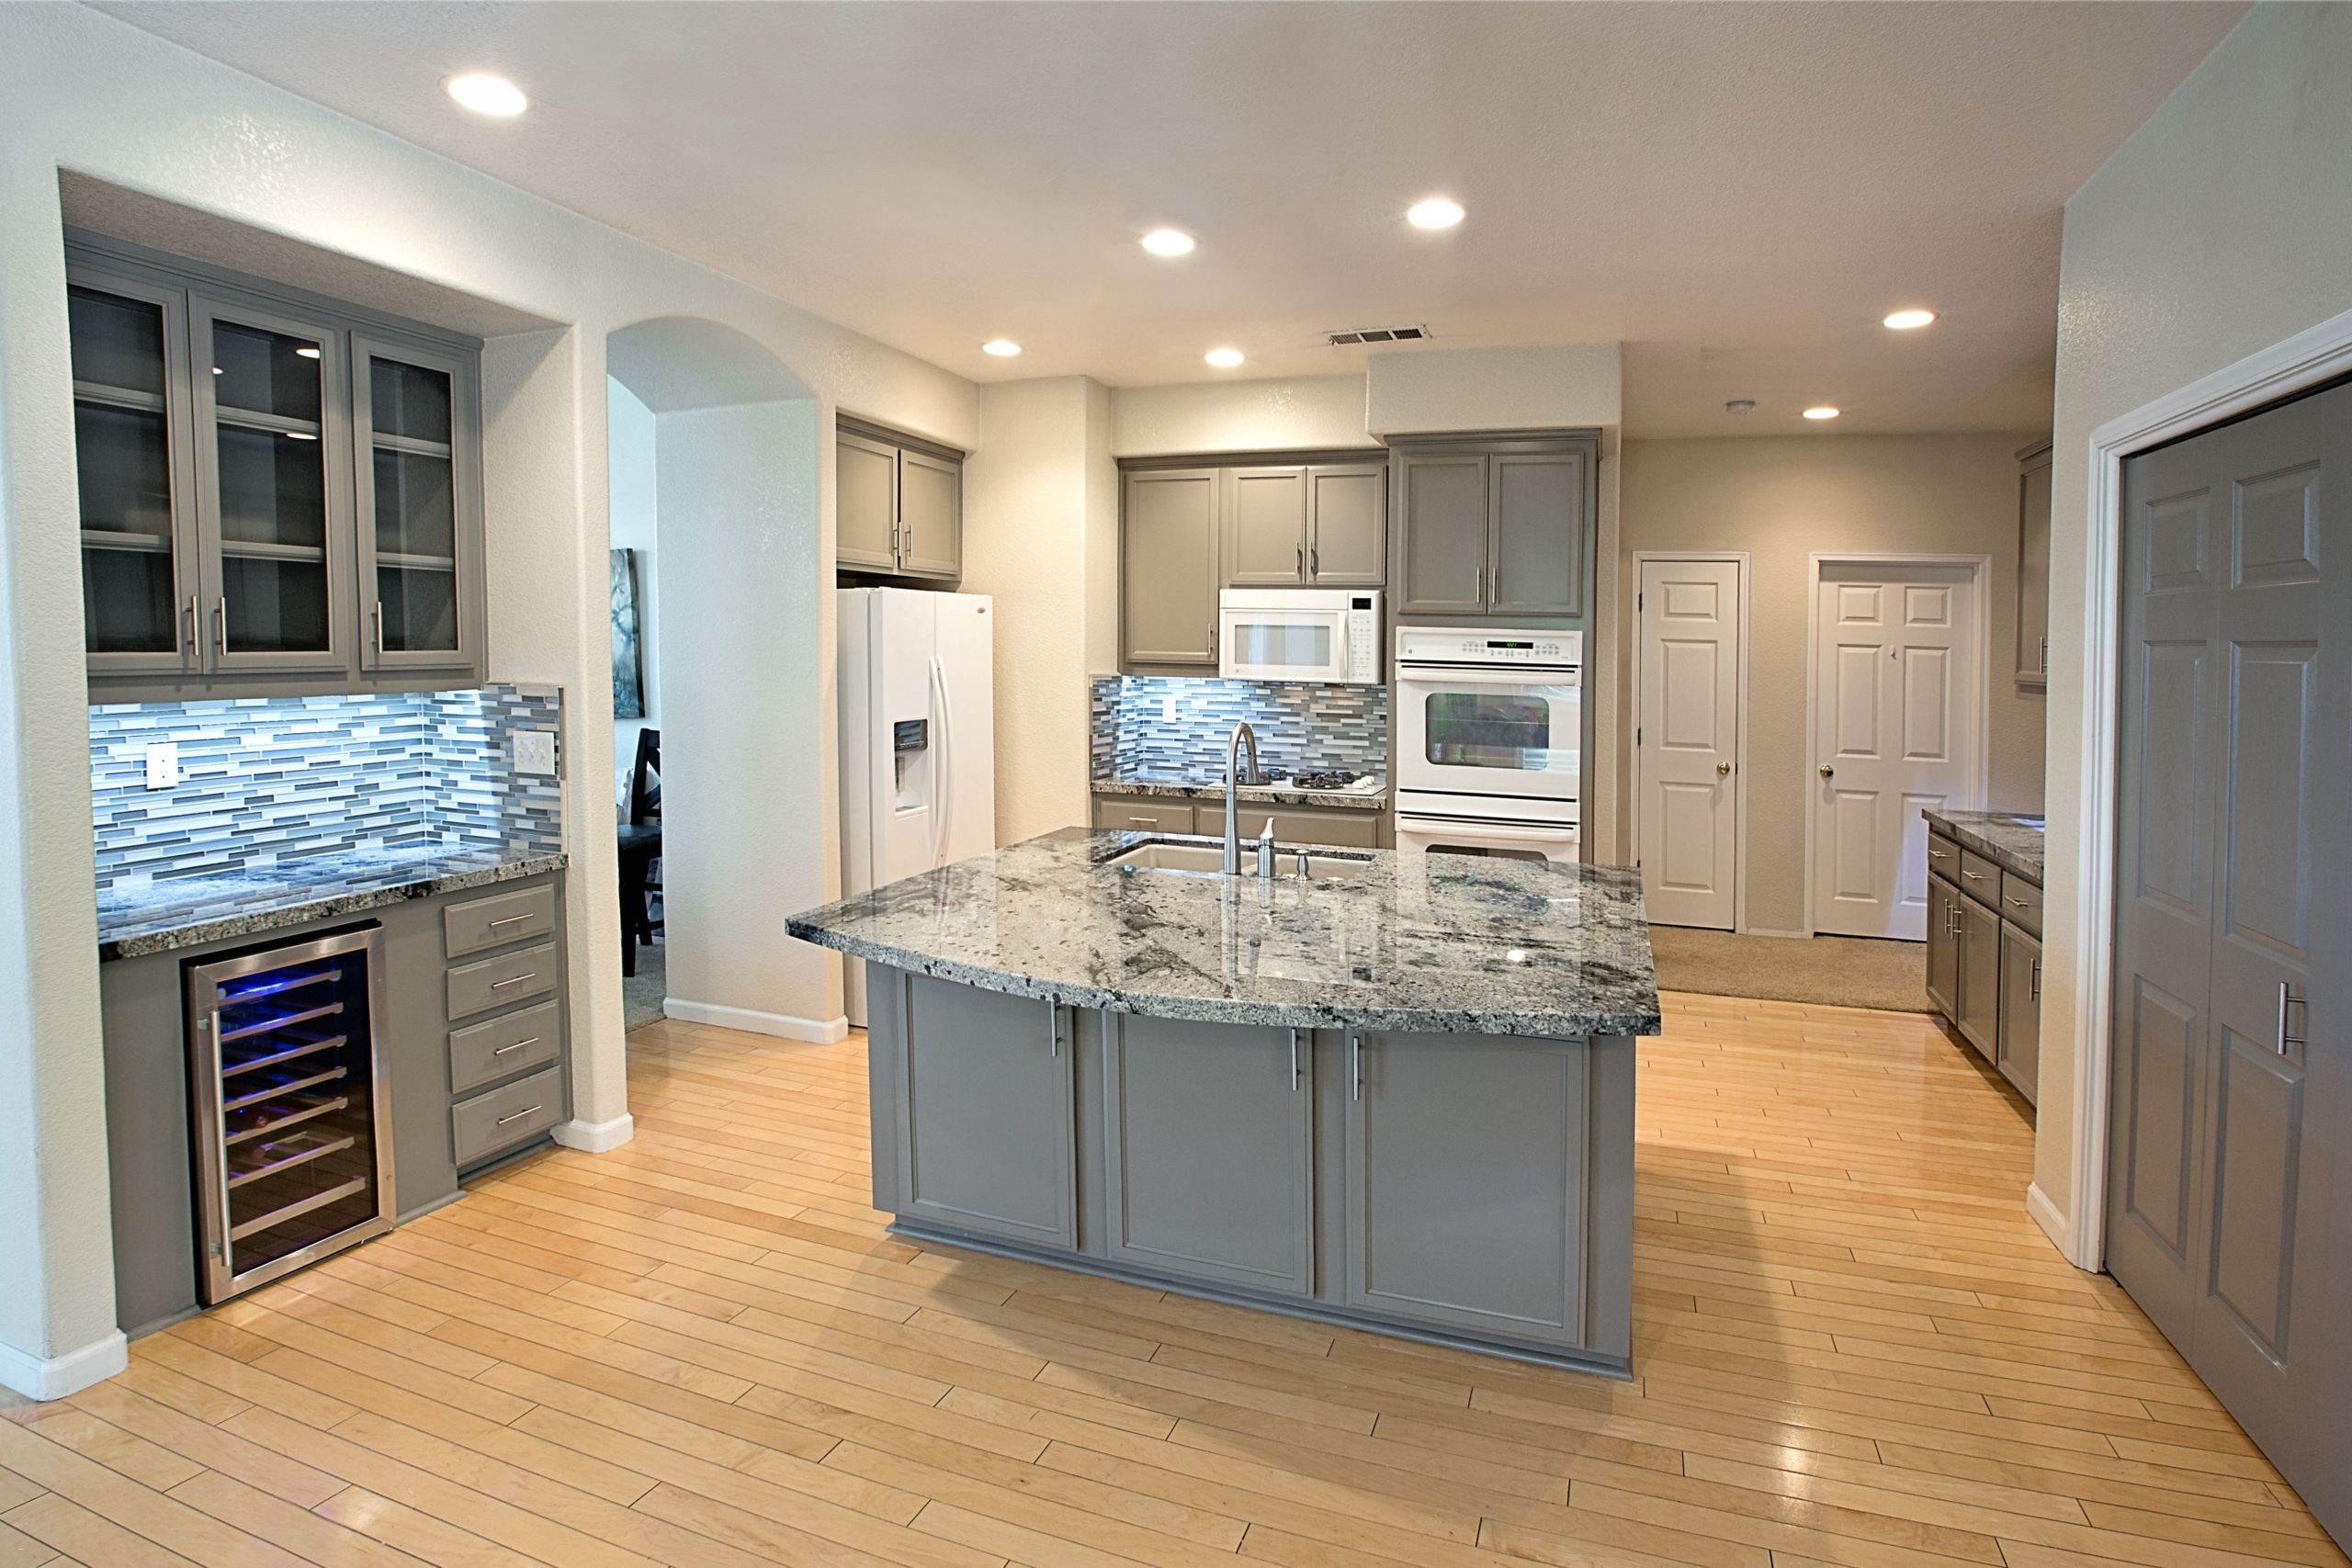 22 Favorite Recessed Lighting Placement Kitchen - Home ...